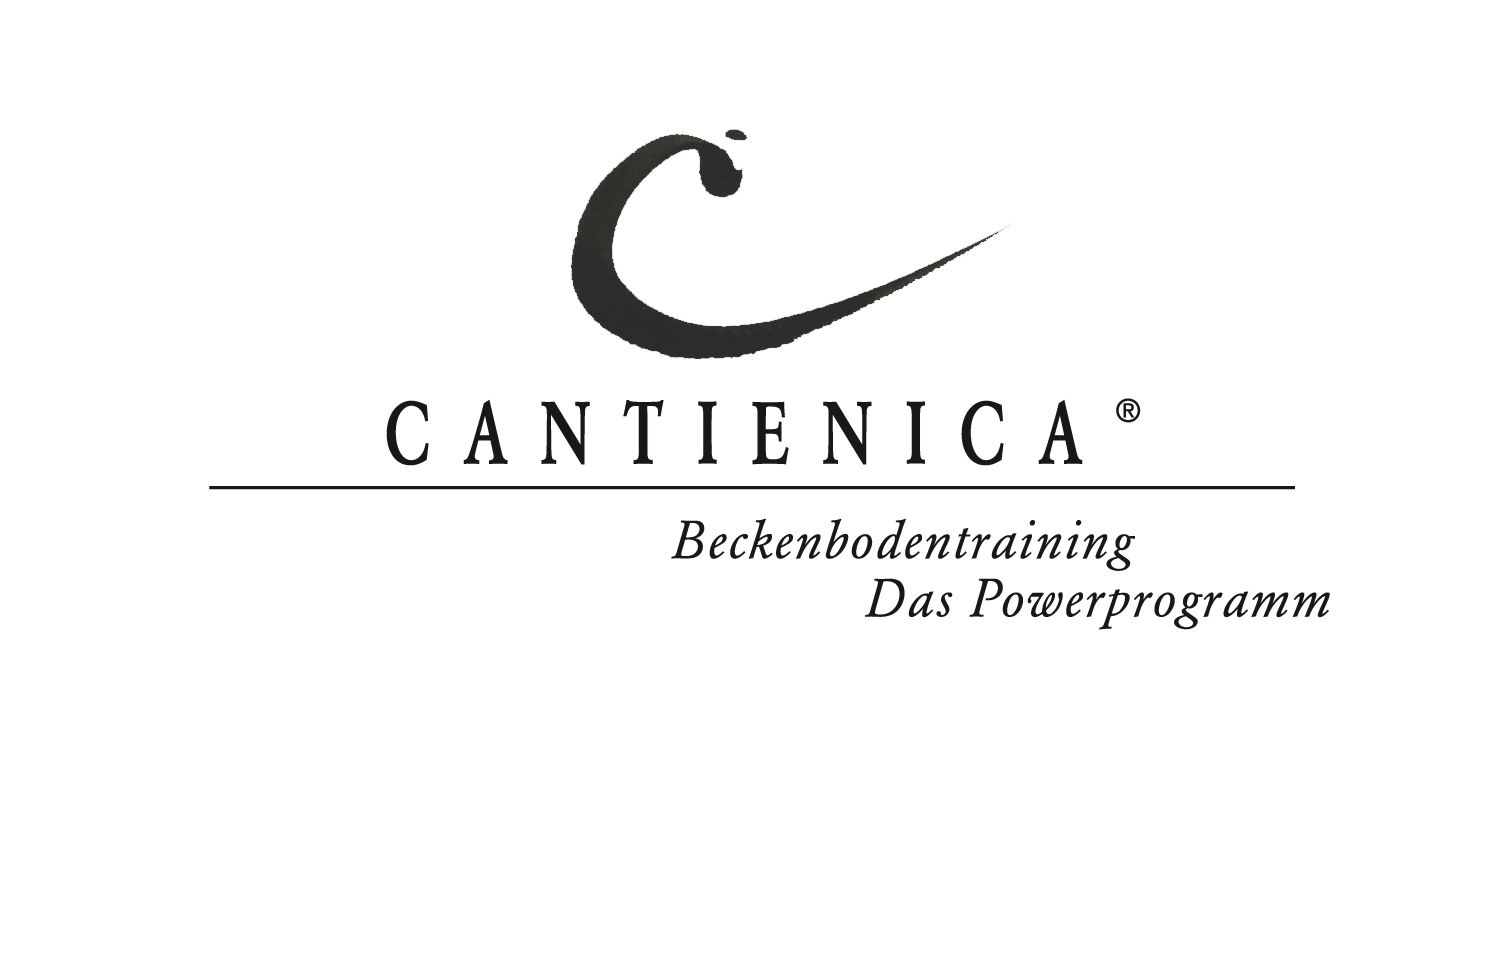 cantienica-BB-PP-Logo